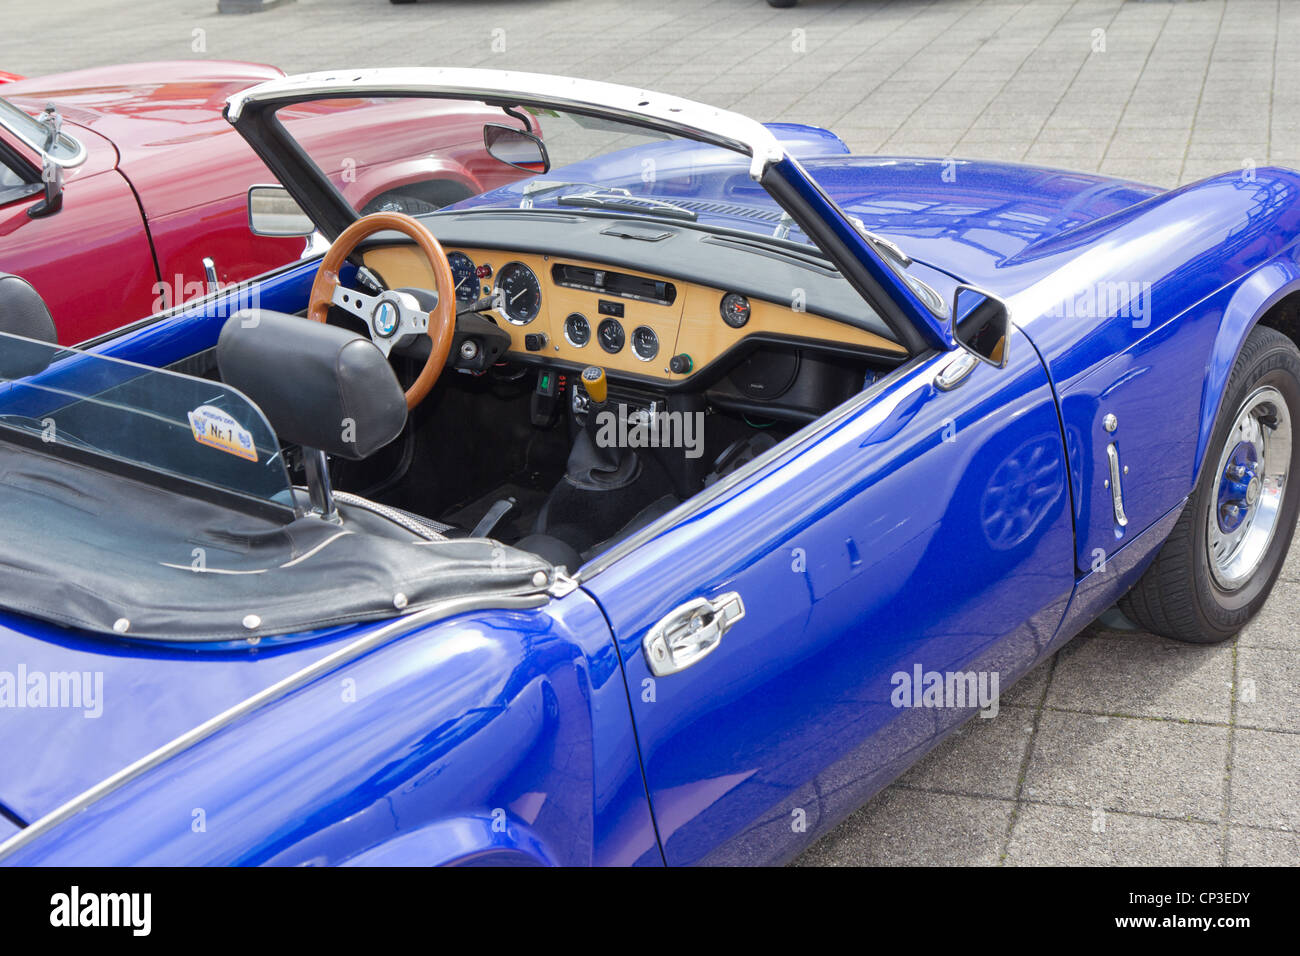 vintage race car triumph spitfire mk interior from 1964 stock photo royalty free image. Black Bedroom Furniture Sets. Home Design Ideas